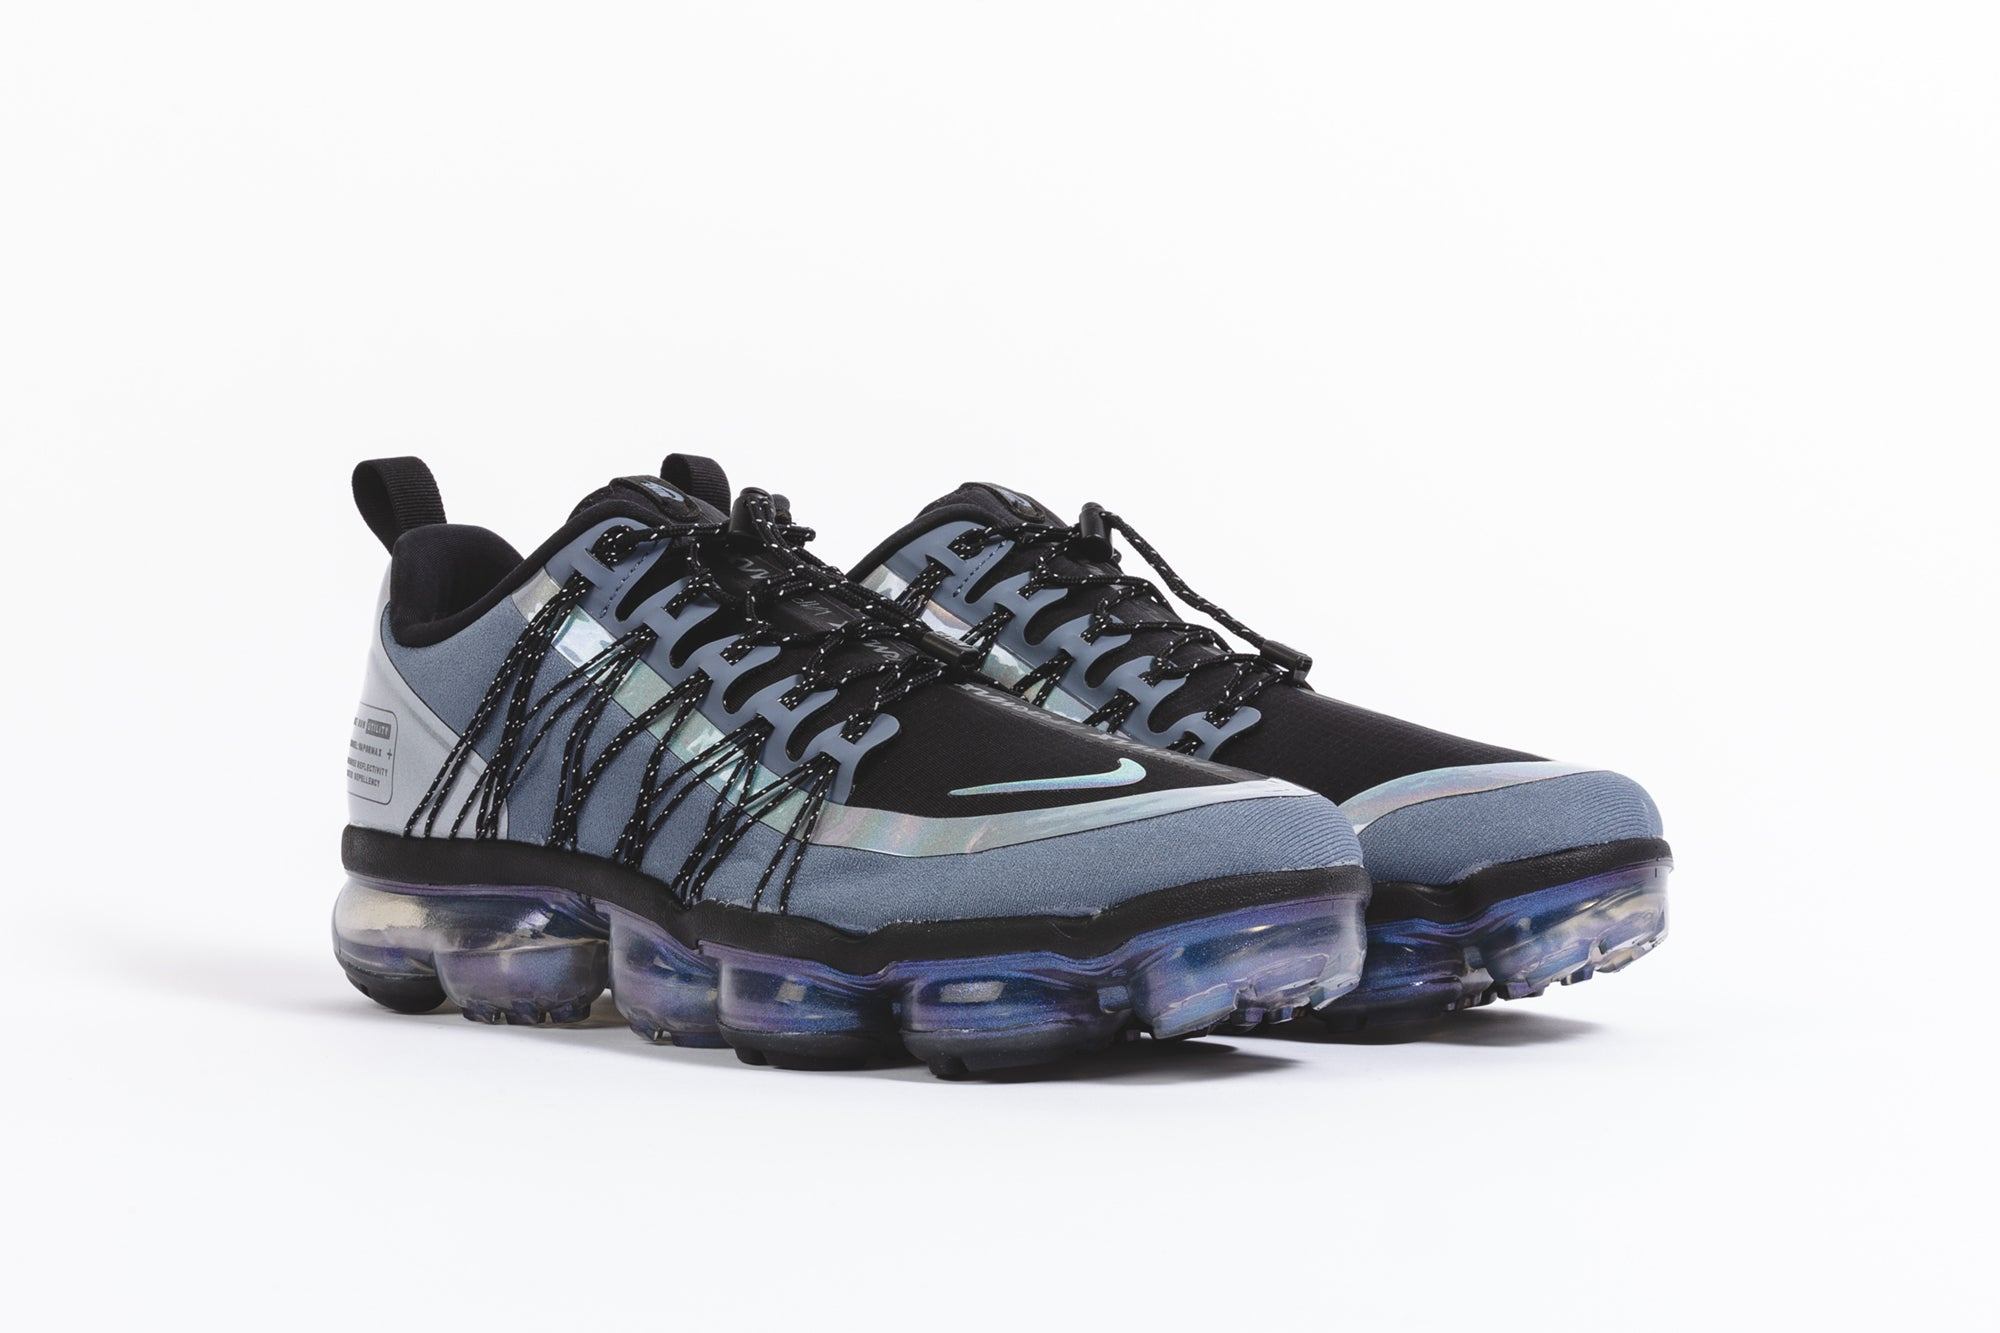 5d4d86ac3fc49 NIKE AIR VAPORMAX RUN UTILITY – PACKER SHOES